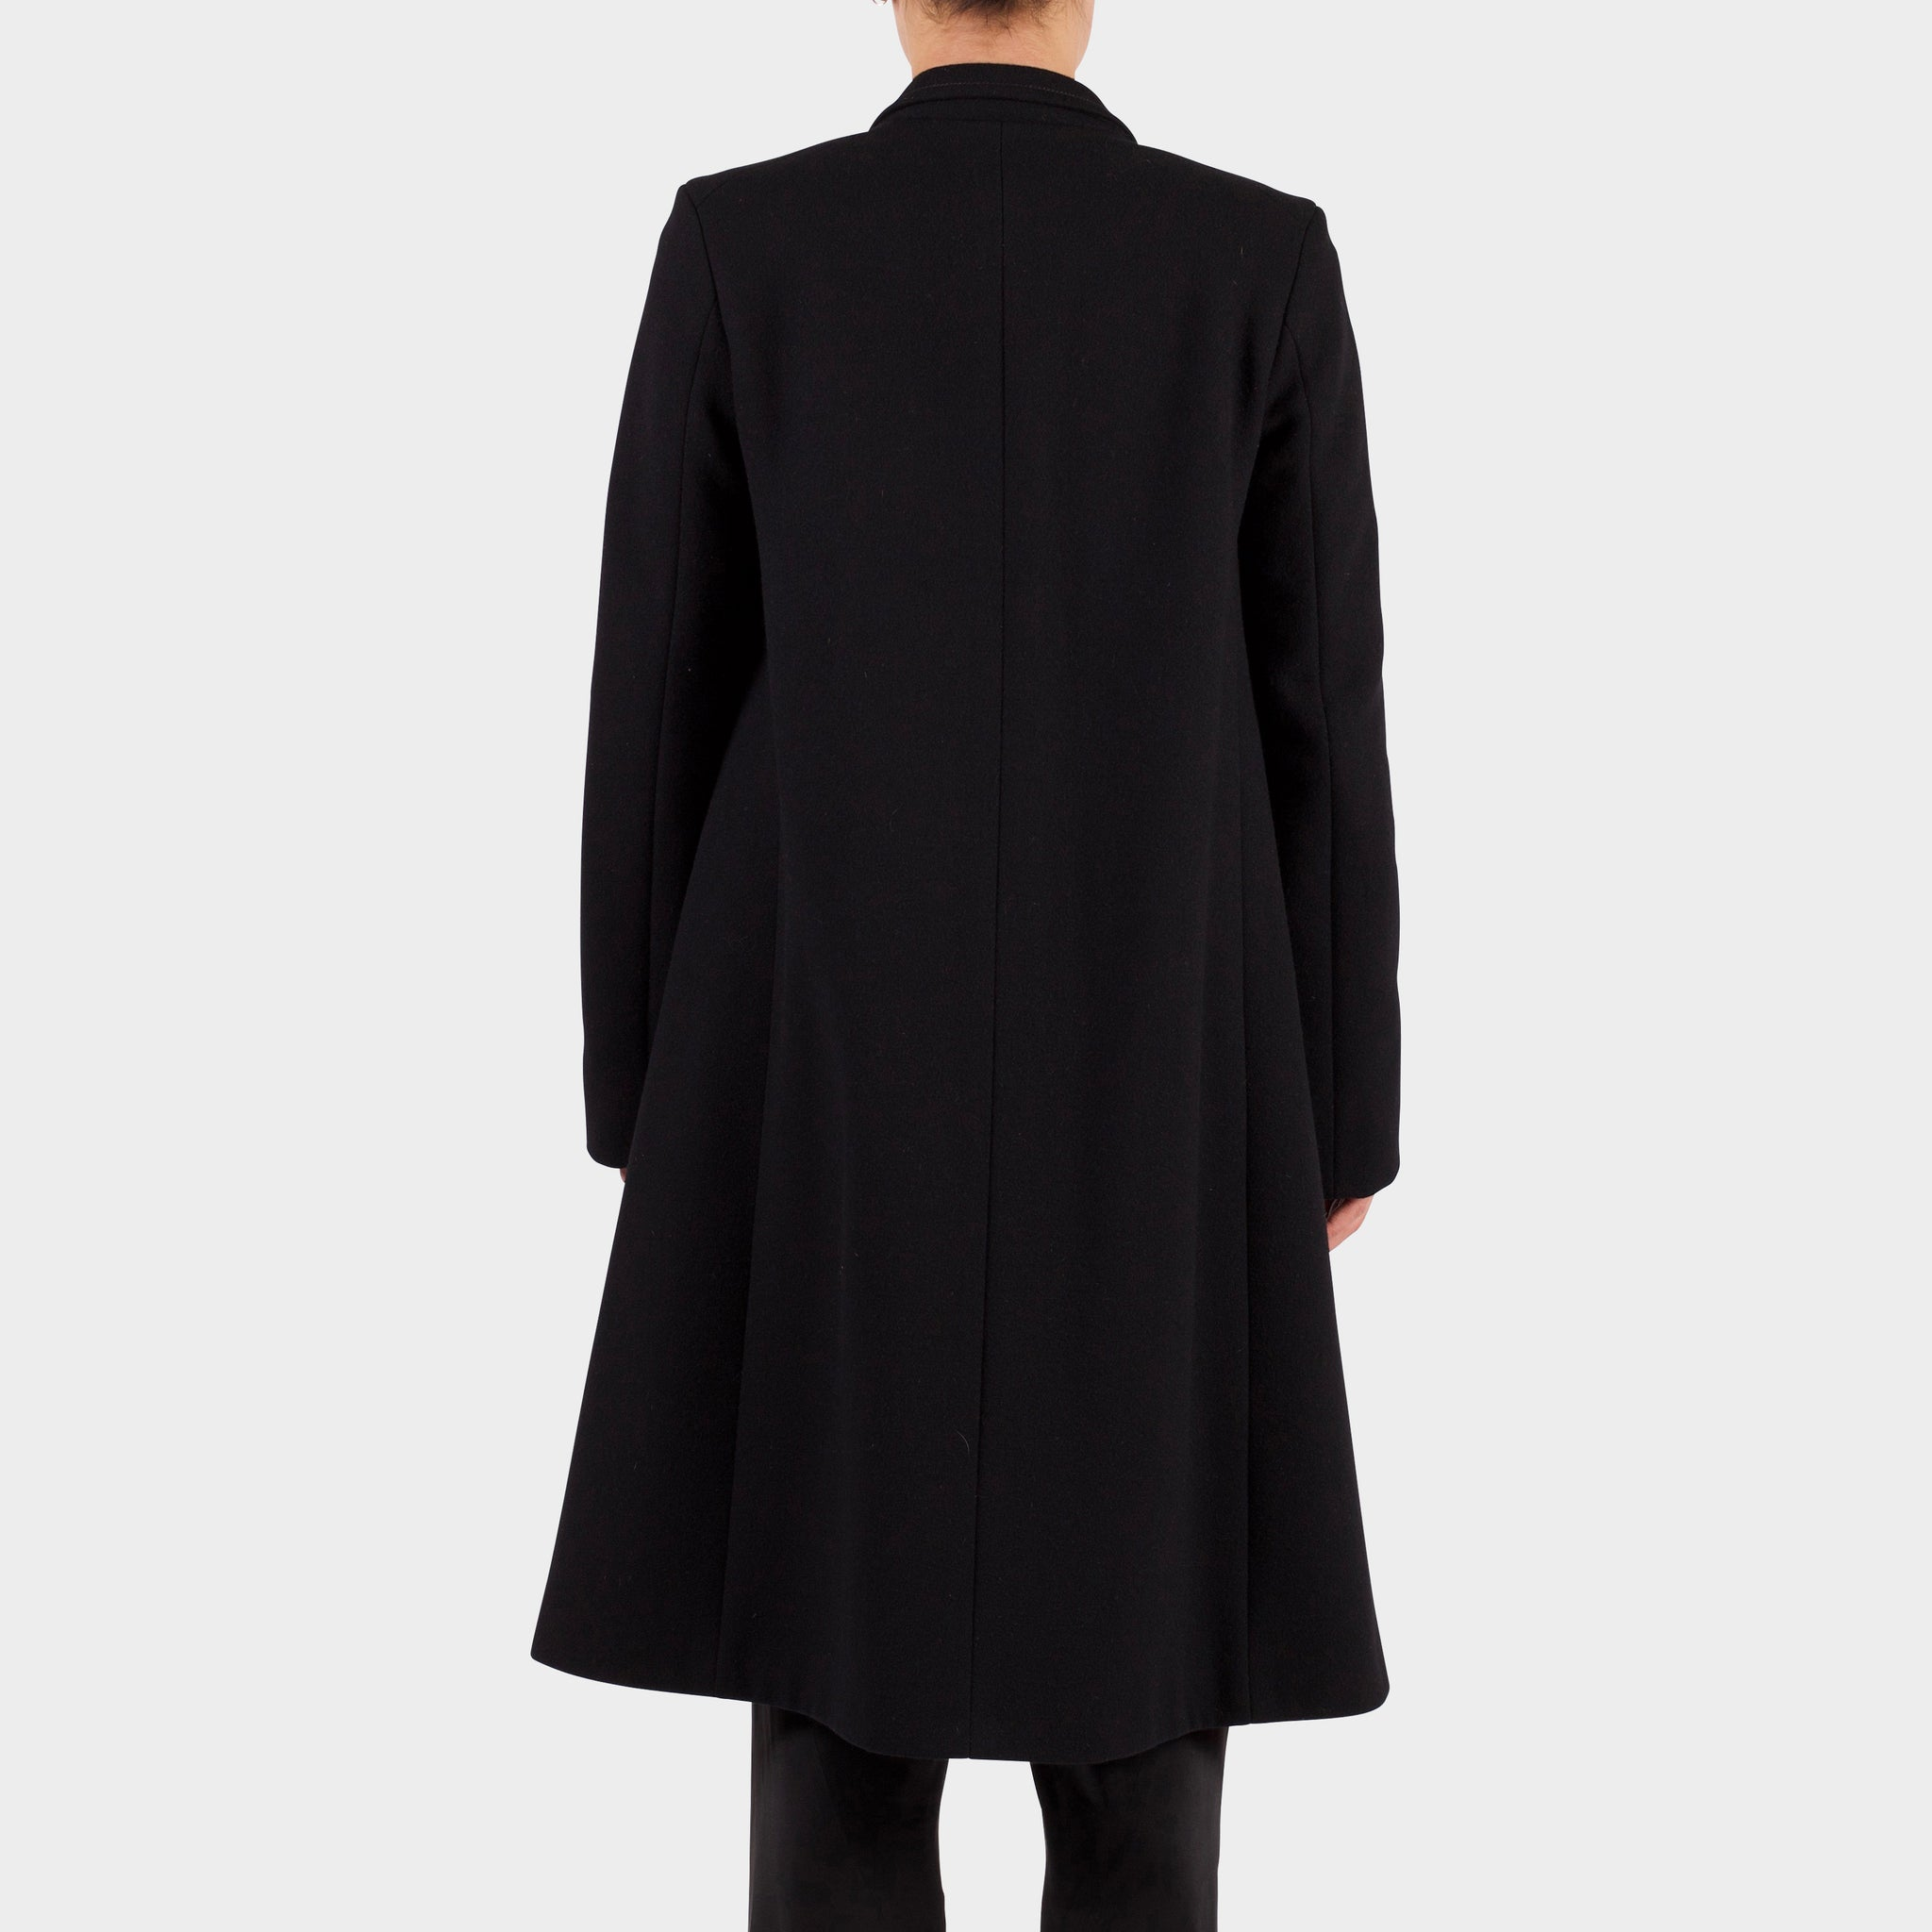 Jil Sander Black Wool Coat